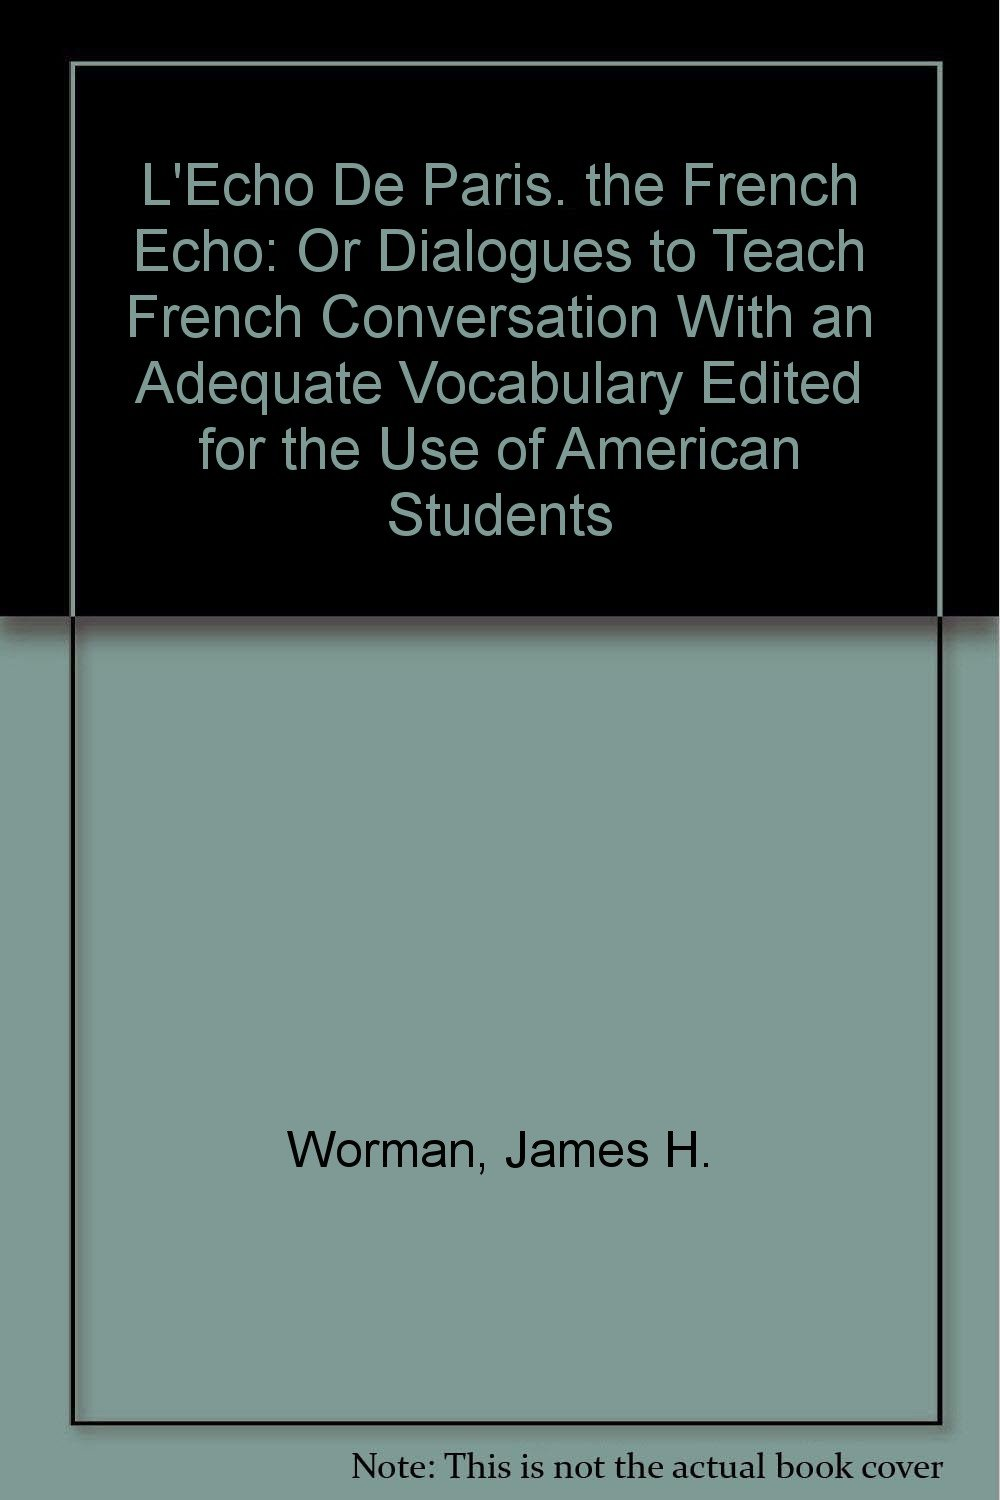 L'Echo De Paris  the French Echo: Or Dialogues to Teach French